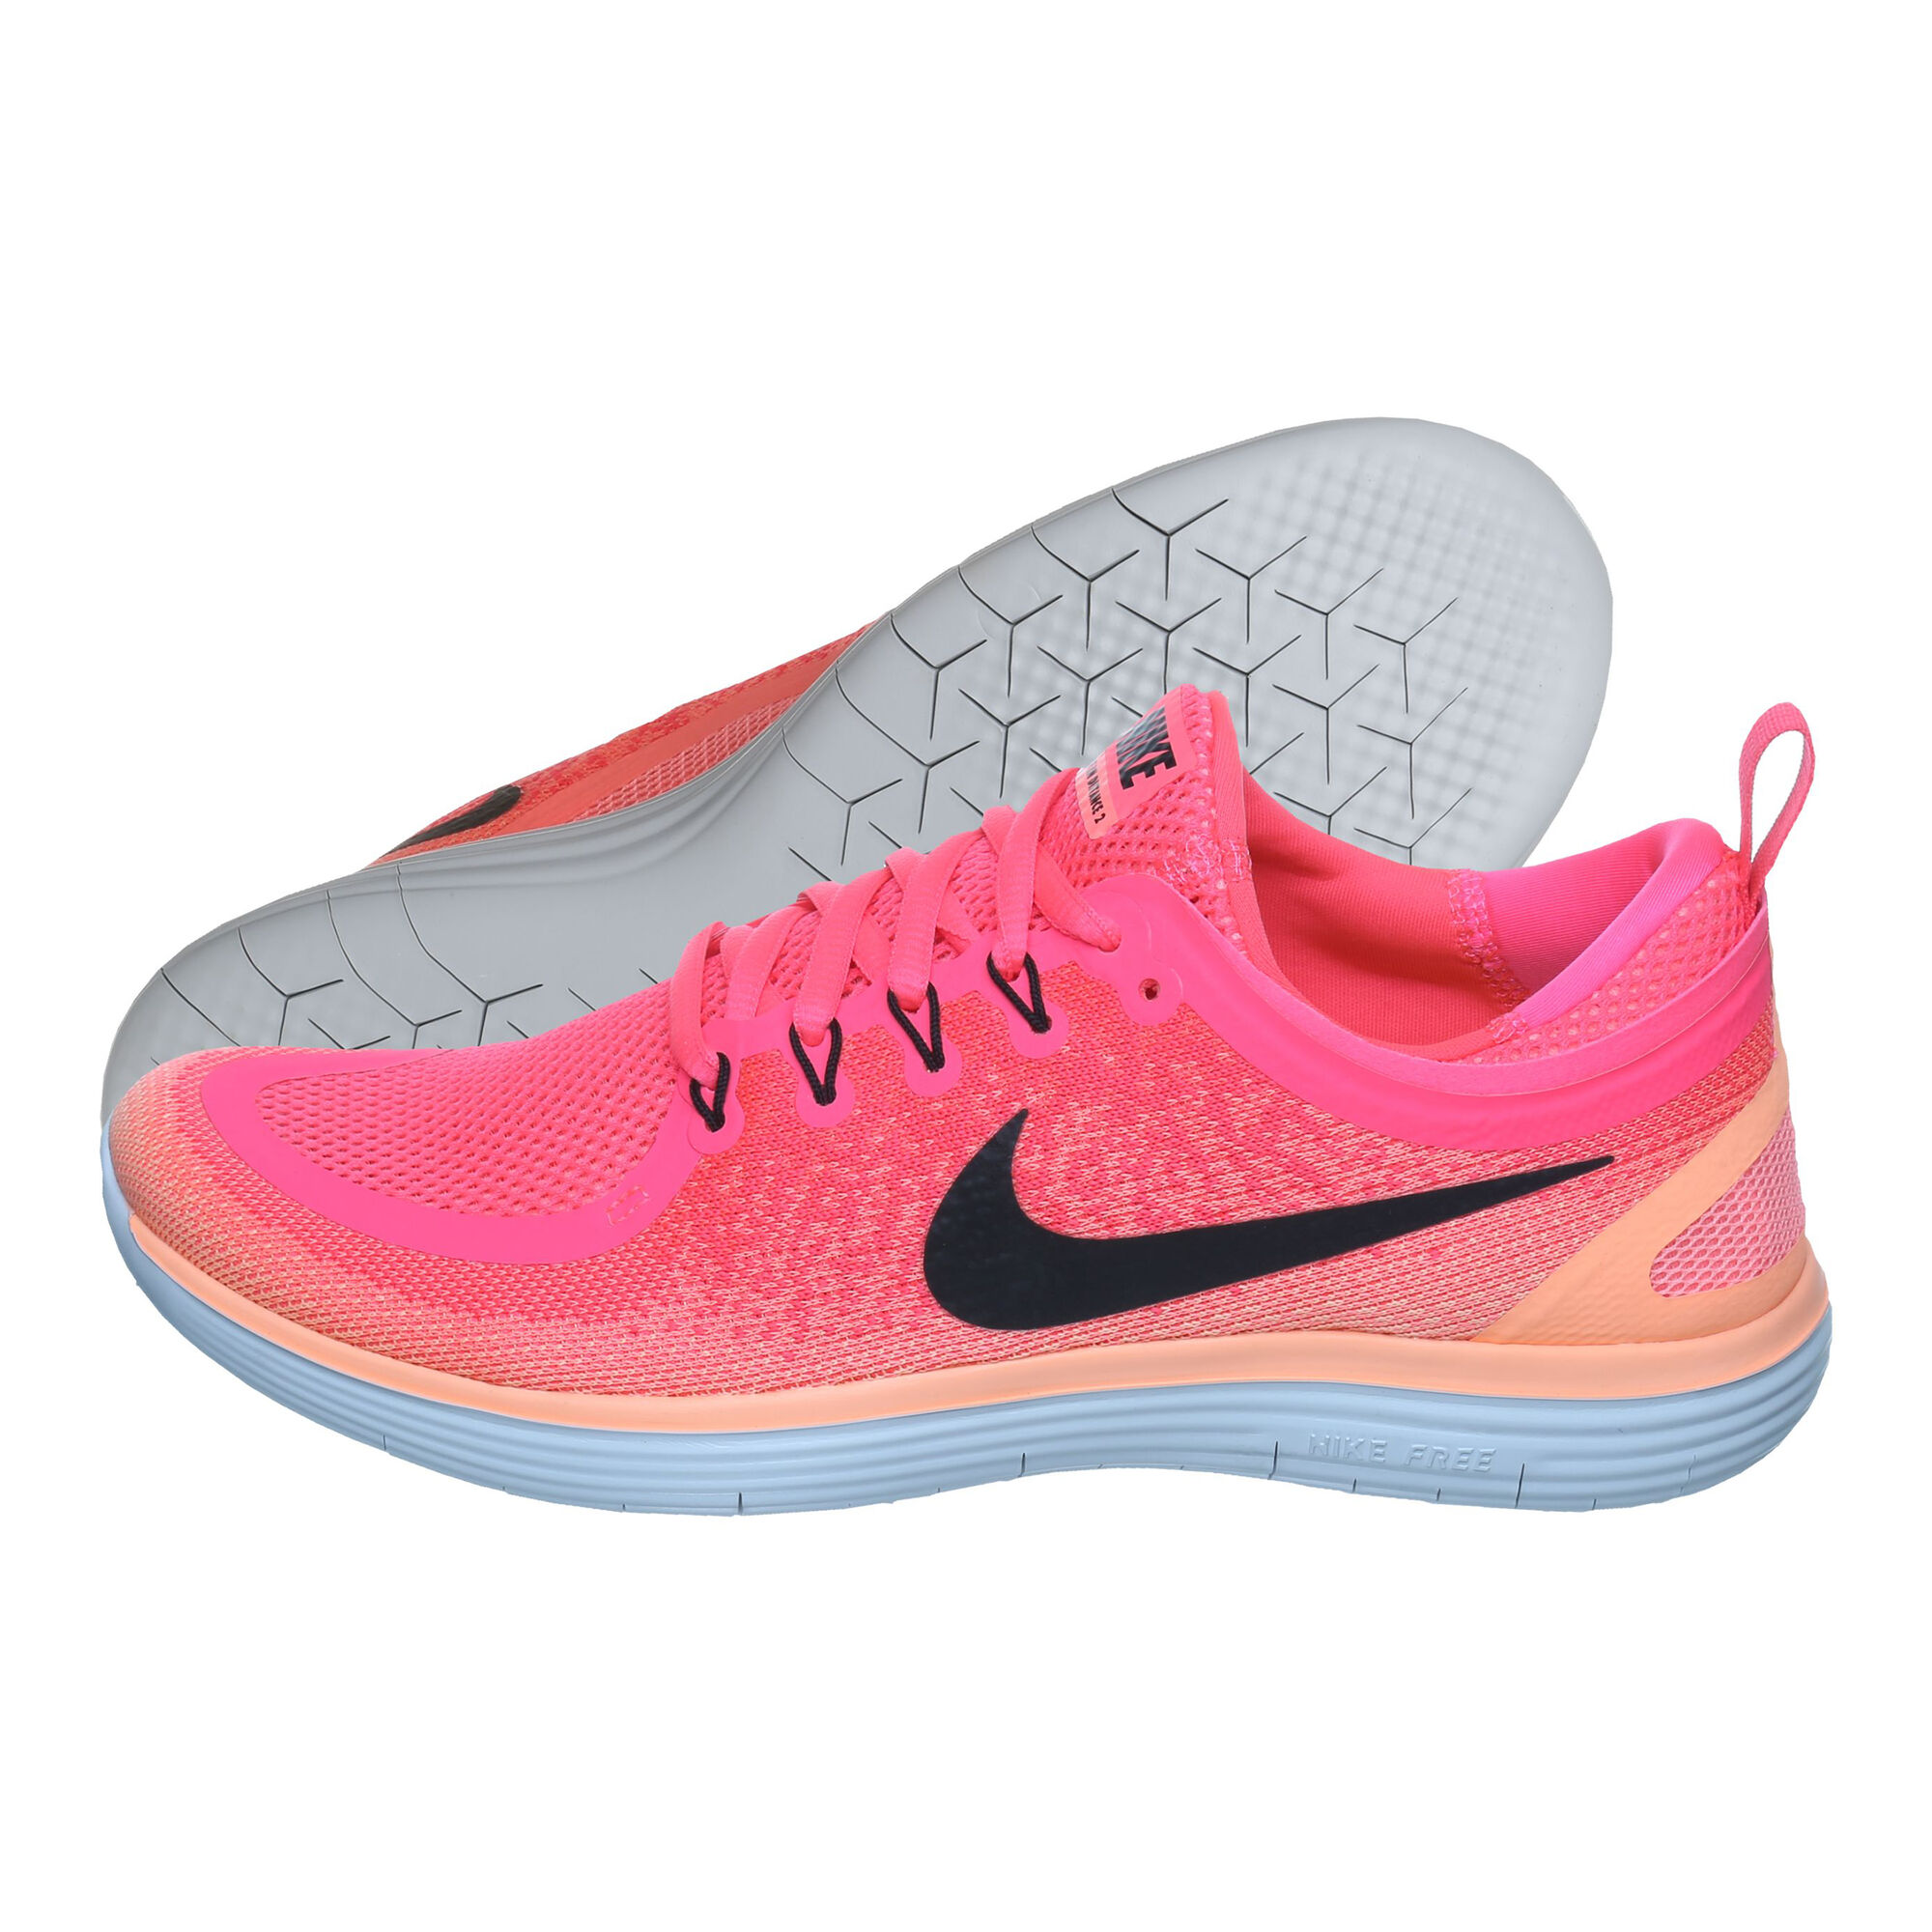 online store 9fbf3 88379 buy Nike Free RN Distance 2 Natural Running Shoe Women ...